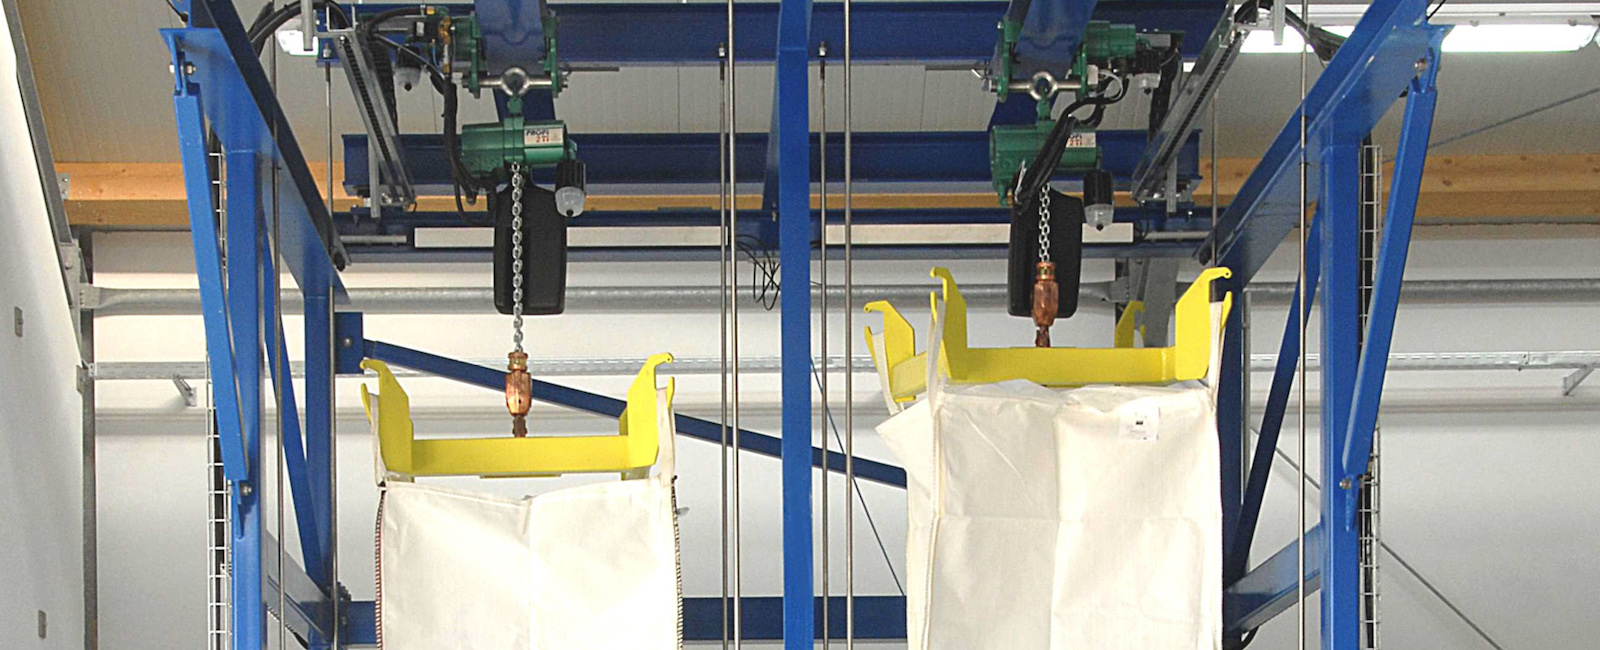 J D Neuhaus: Hoists deliver 'elevated' Performance in the Process Industry